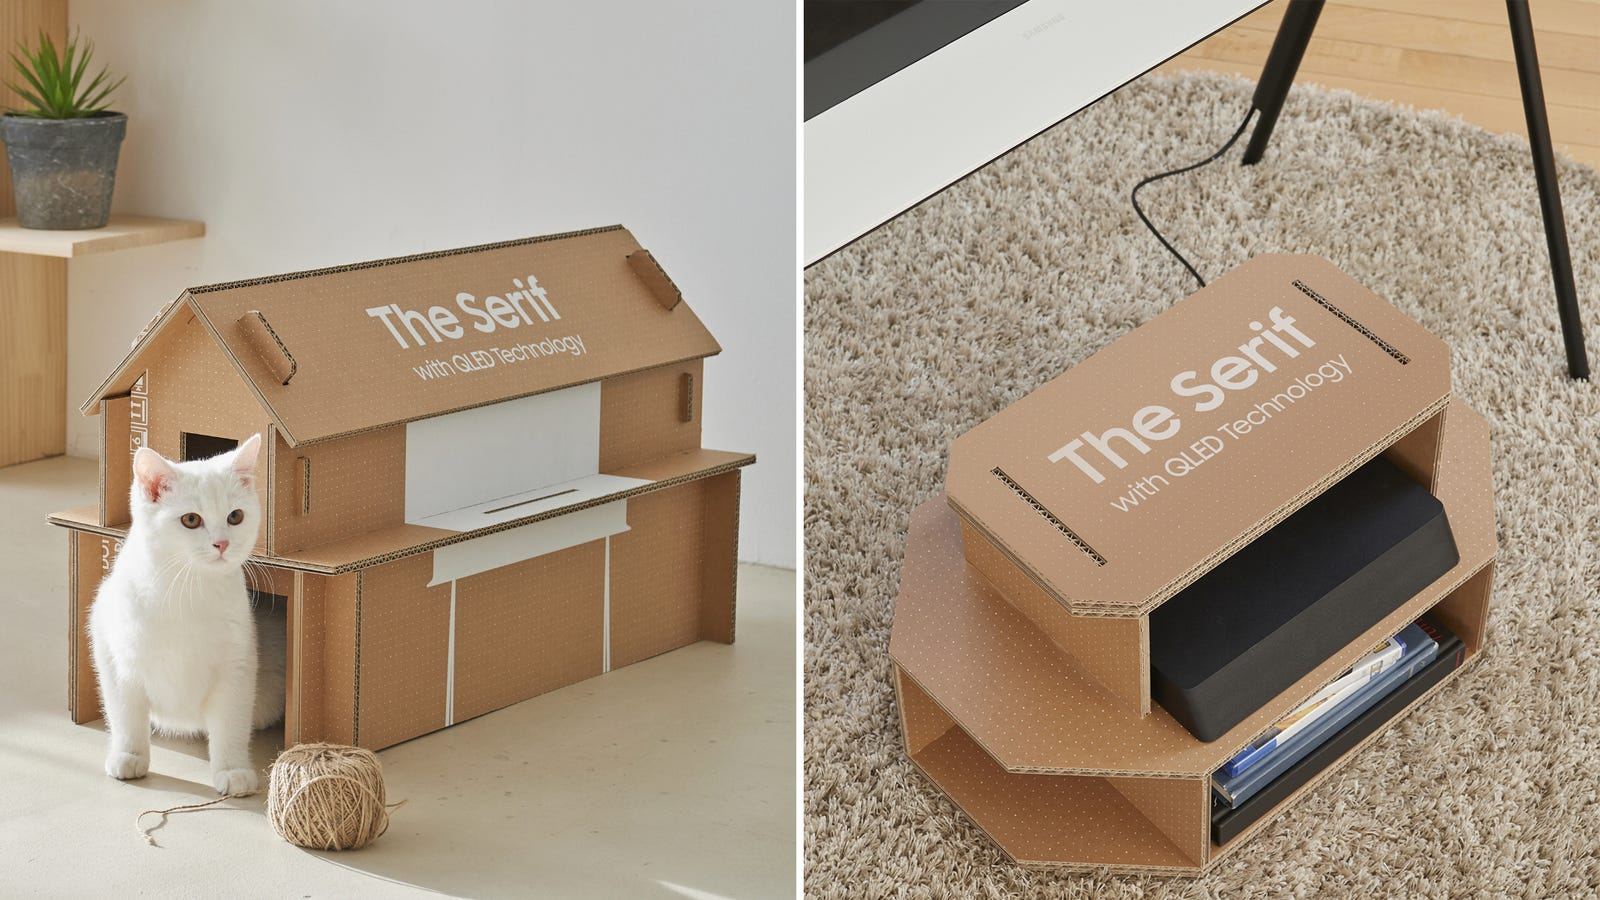 Samsung Redesigned Its TV Boxes to be Easily Converted Into Cat ...